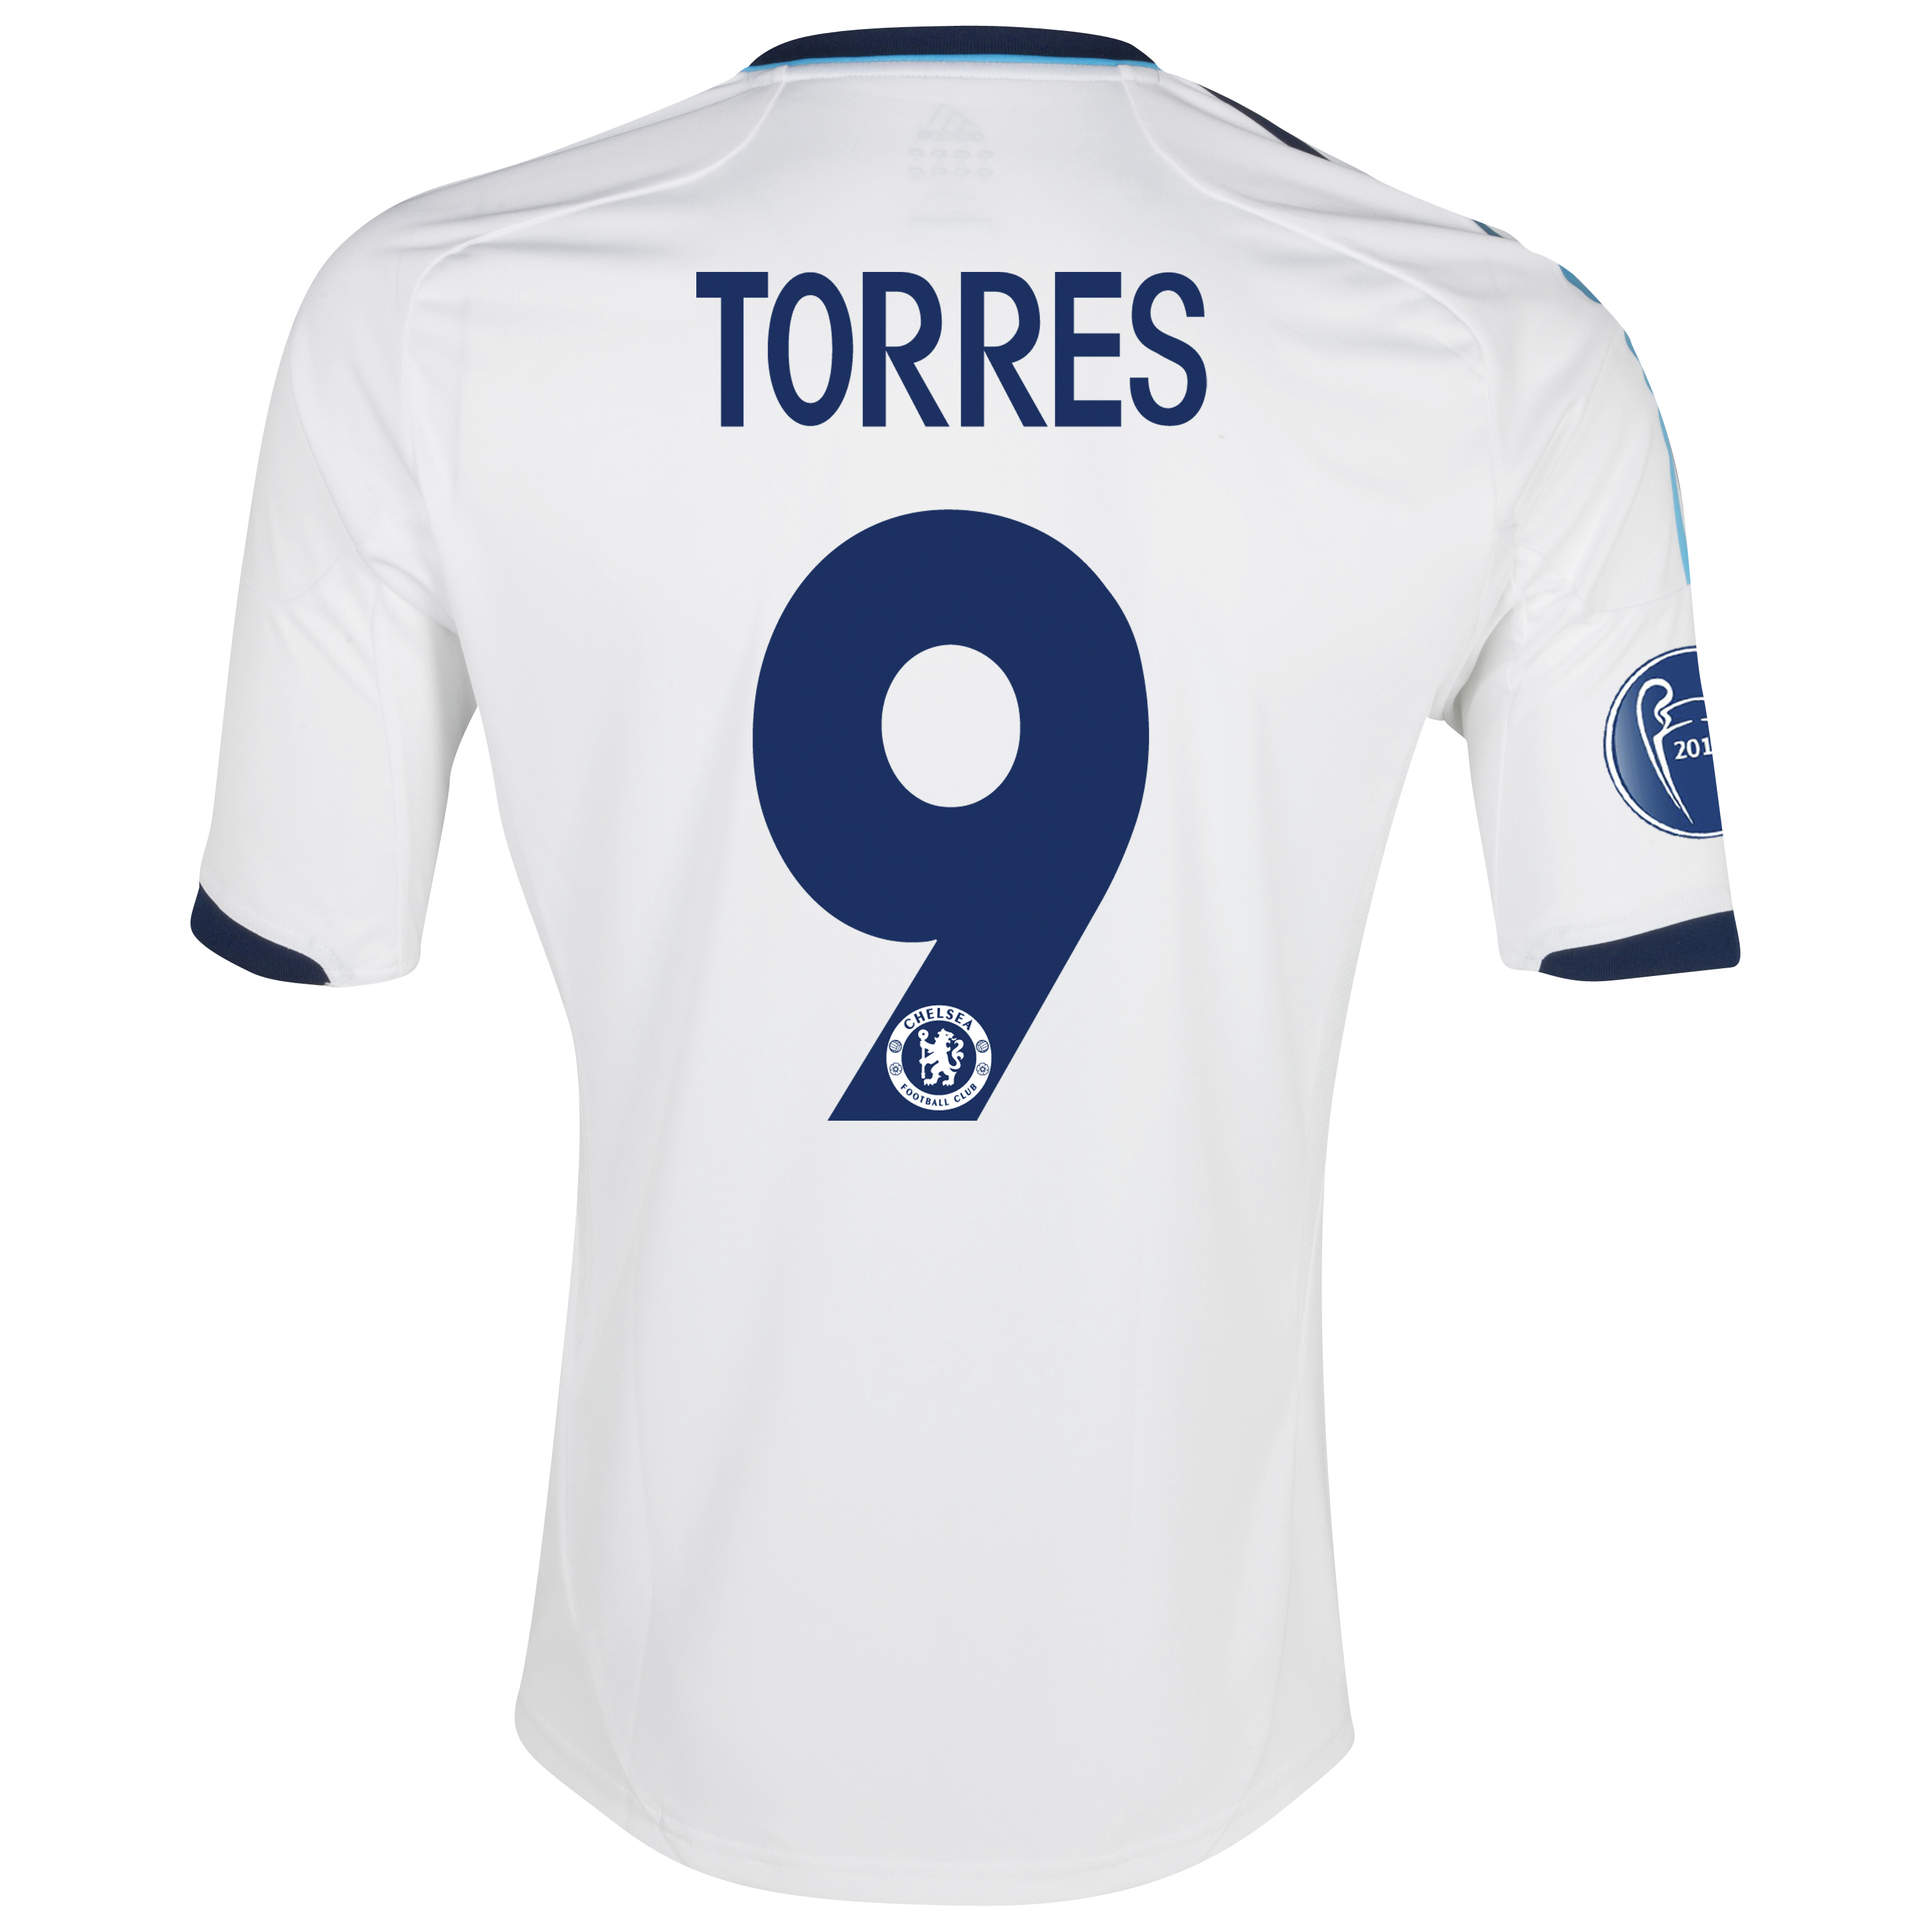 Chelsea UEFA Champions League Away Shirt 2012/13 - Youths with Torres 9 printing